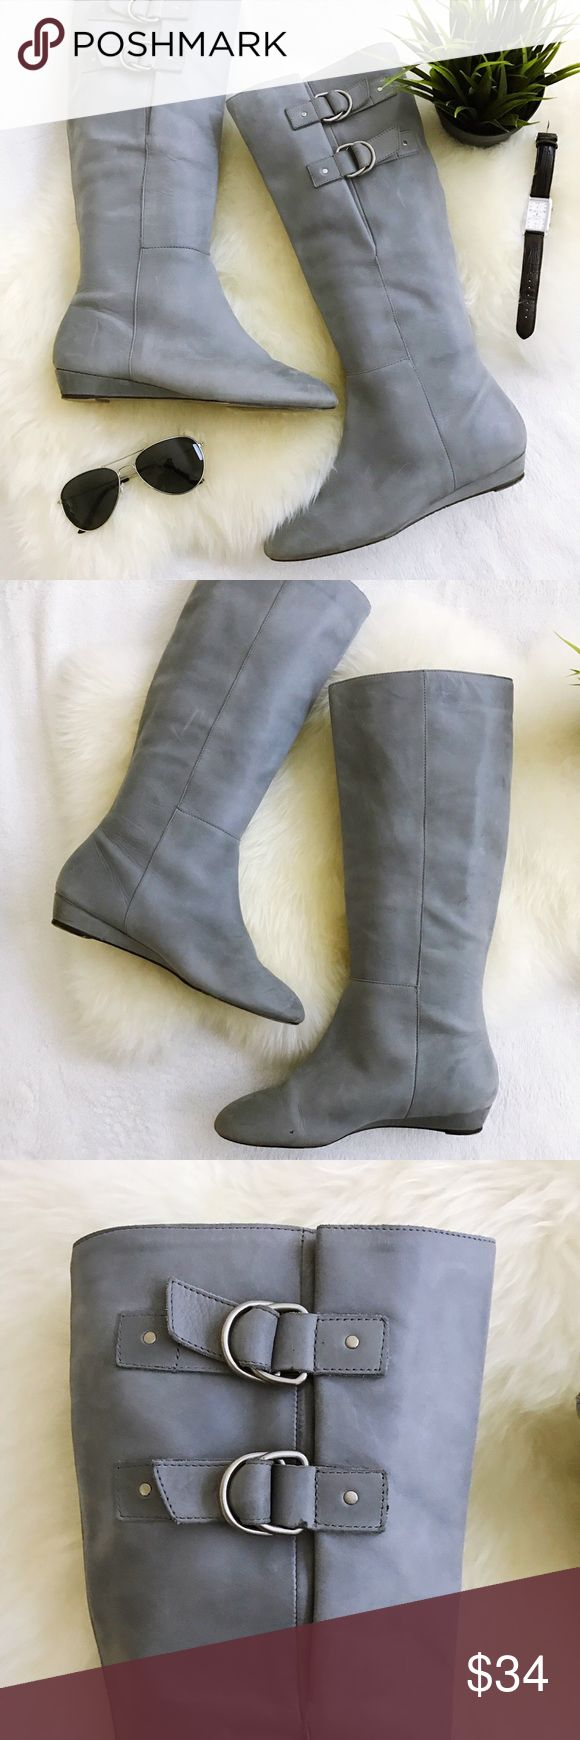 """Seychelles At Last light gray pull on leather boot GUC no major flaws. Have scuffs and marks through Minimal amount of wear to soles and heels Pull on style, 1"""" wedge heel Beautiful light dove gray color Buckles at top, adjustable  Feel free to ask questions Review all photos thoroughly  🚫trades 🚫modeling requests  🚫🅿️🅿️ 👍🏻Reasonable offers welcome! Seychelles Shoes Winter & Rain Boots"""